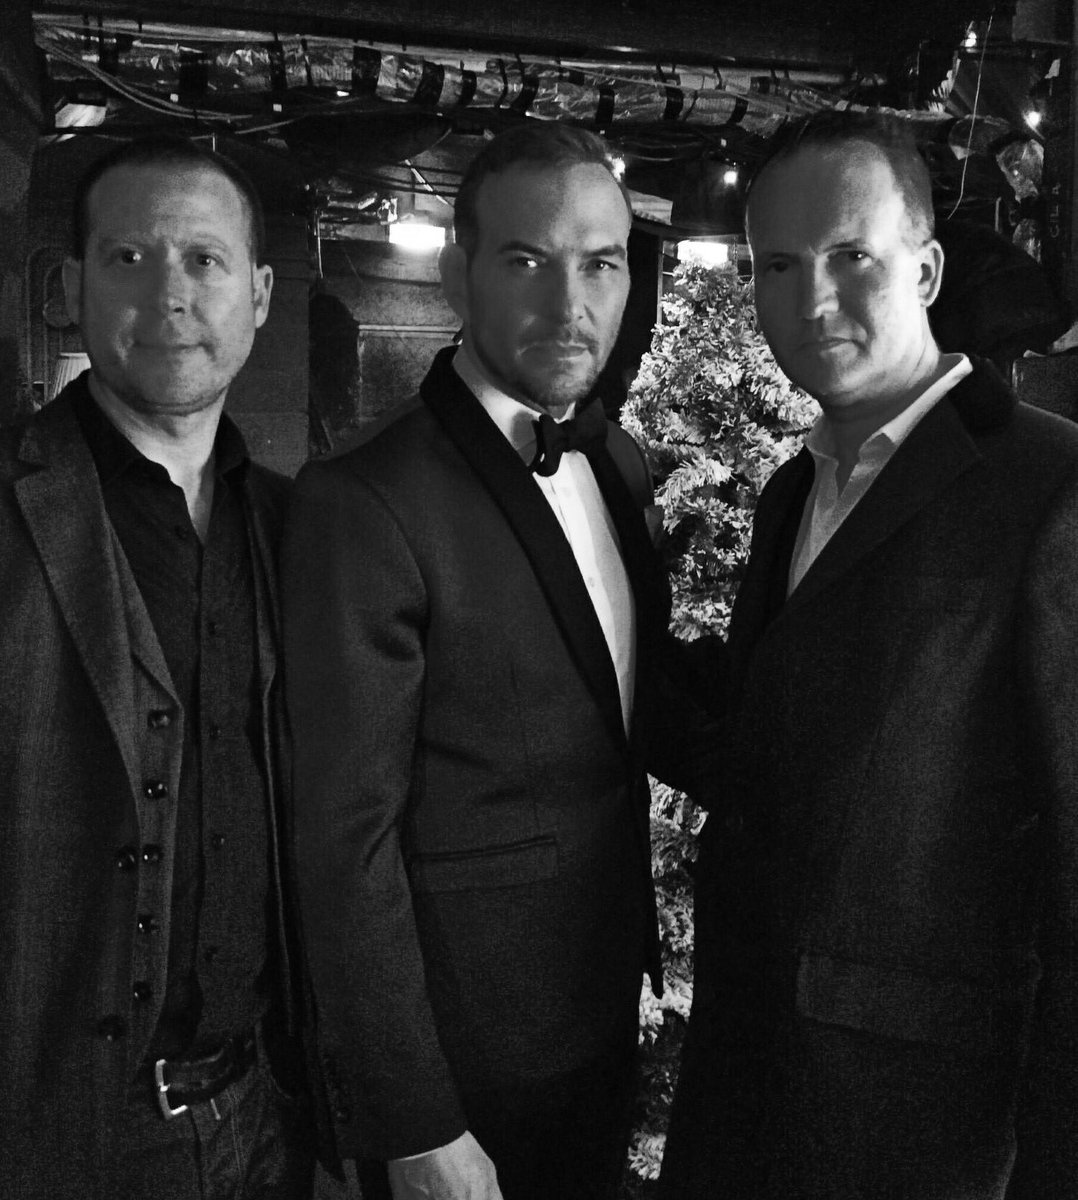 Brothers gonna work it out @TranscendRob @mattgoss @bbcstrictly #mgchristmas https://t.co/n3hOeqpl35